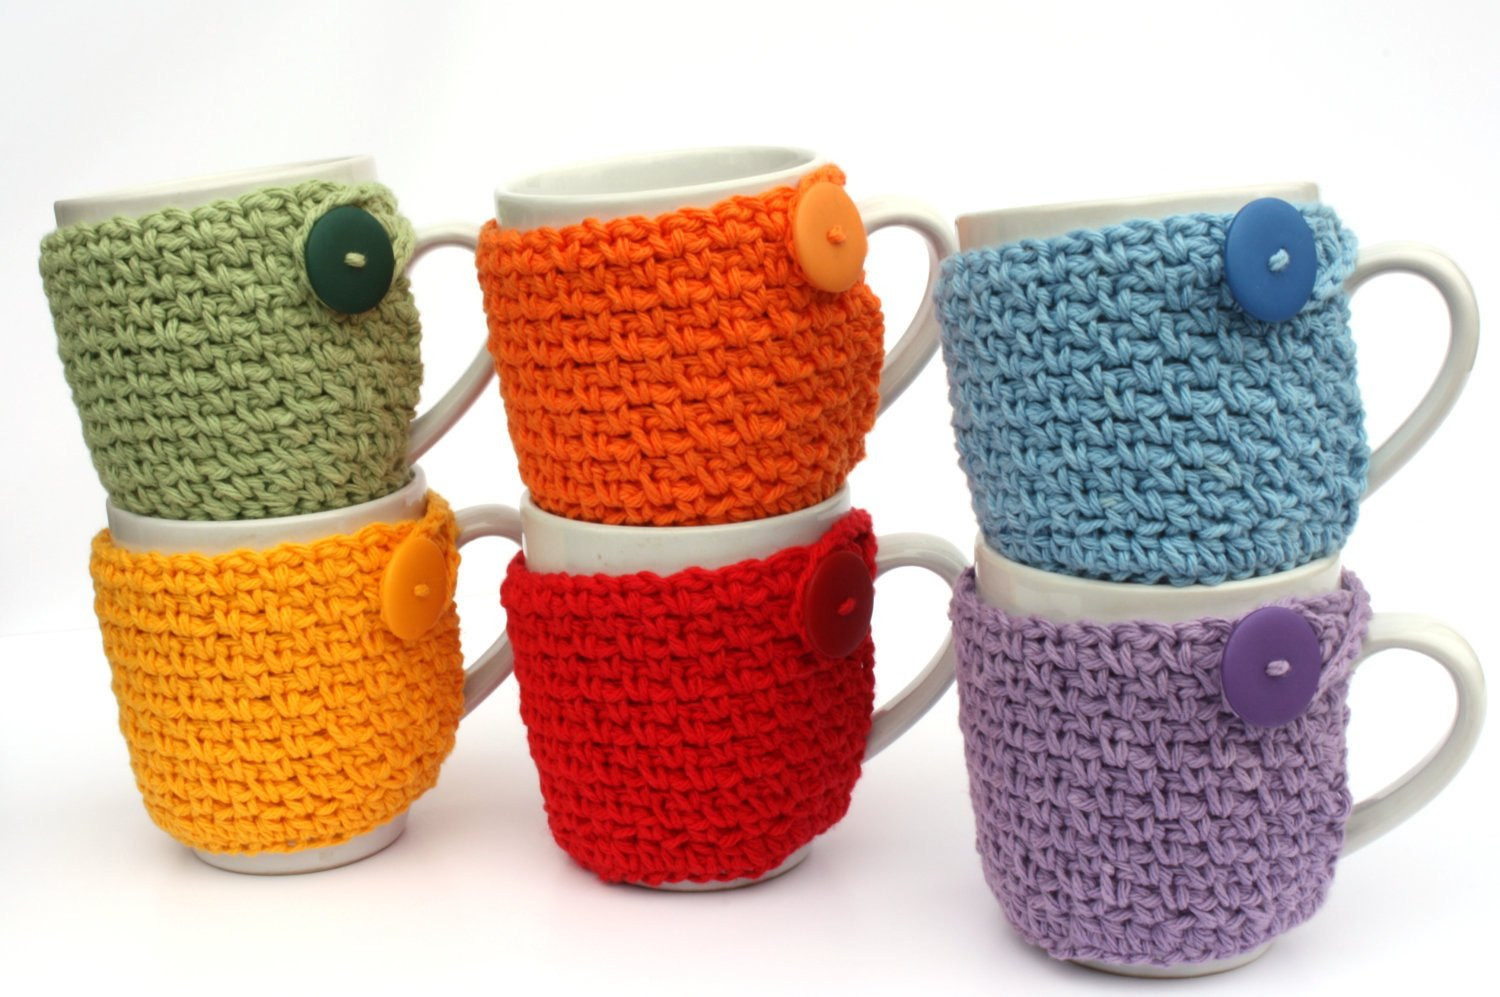 Crochet Coffee Cup Cozy Lovely Coffee Cup Cozy Crochet Cup Sleeve You Pick the by Sweetbriers Of Crochet Coffee Cup Cozy New Crochet Tea Cozy Coffee Cup Sleeve Coffee Sleeve Mug Cozy